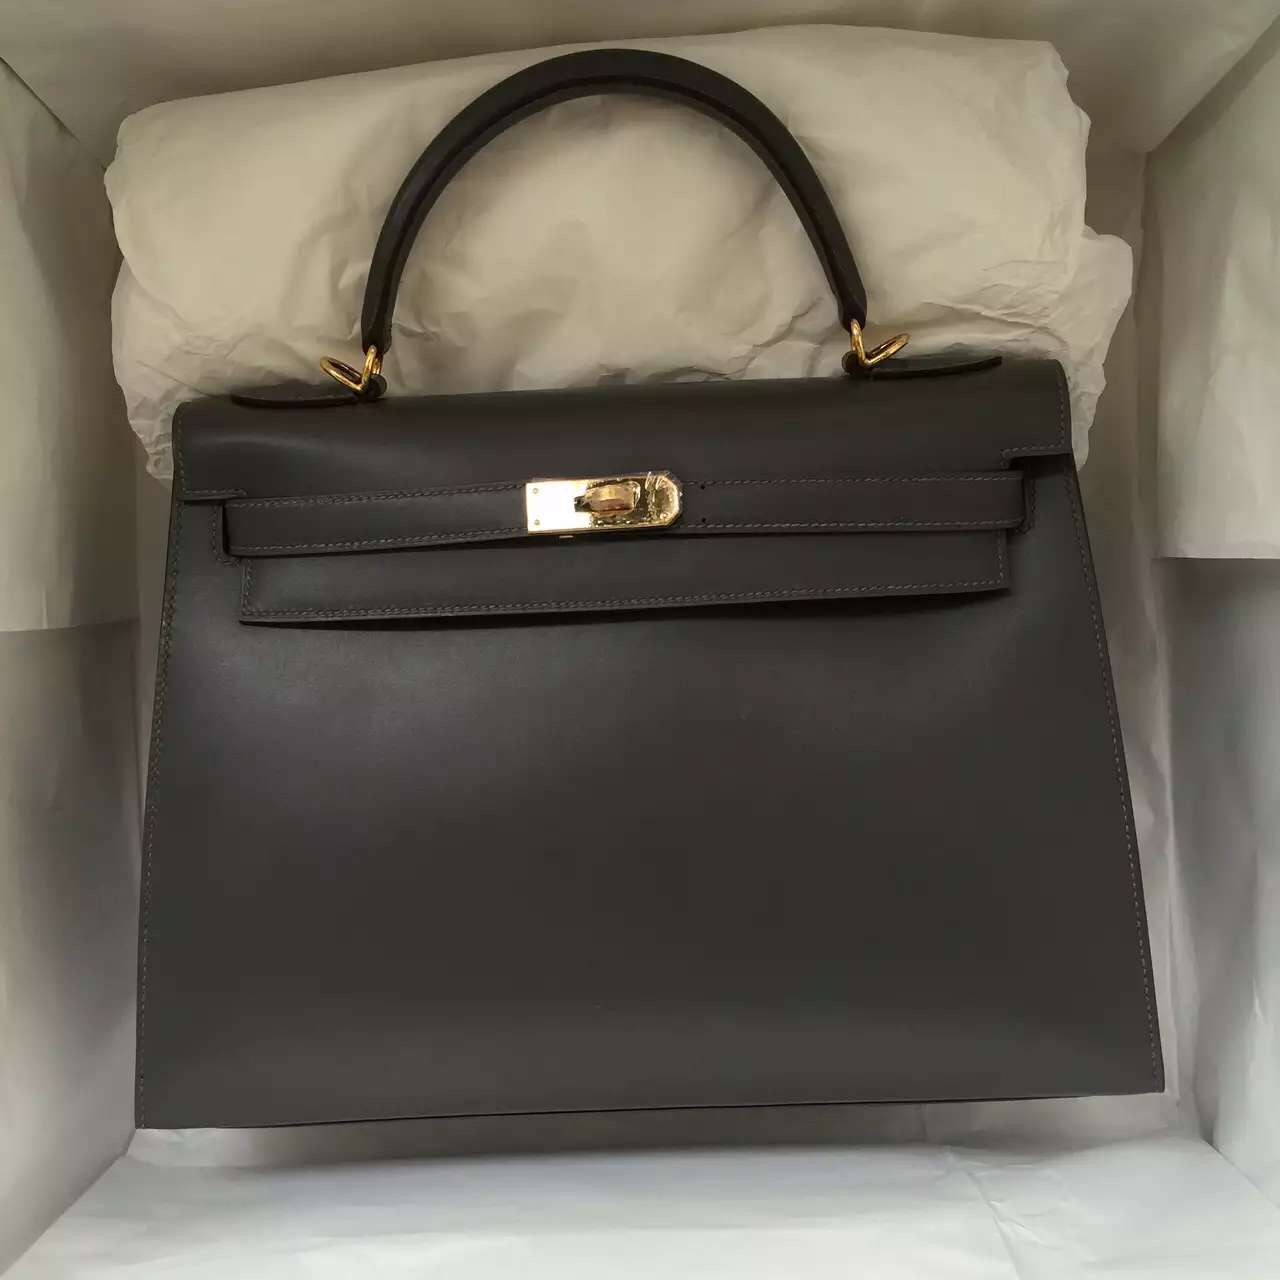 Hermes 8F Etain Grey Box Leather Sellier Kelly Bag 32CM Women's Tote Bag